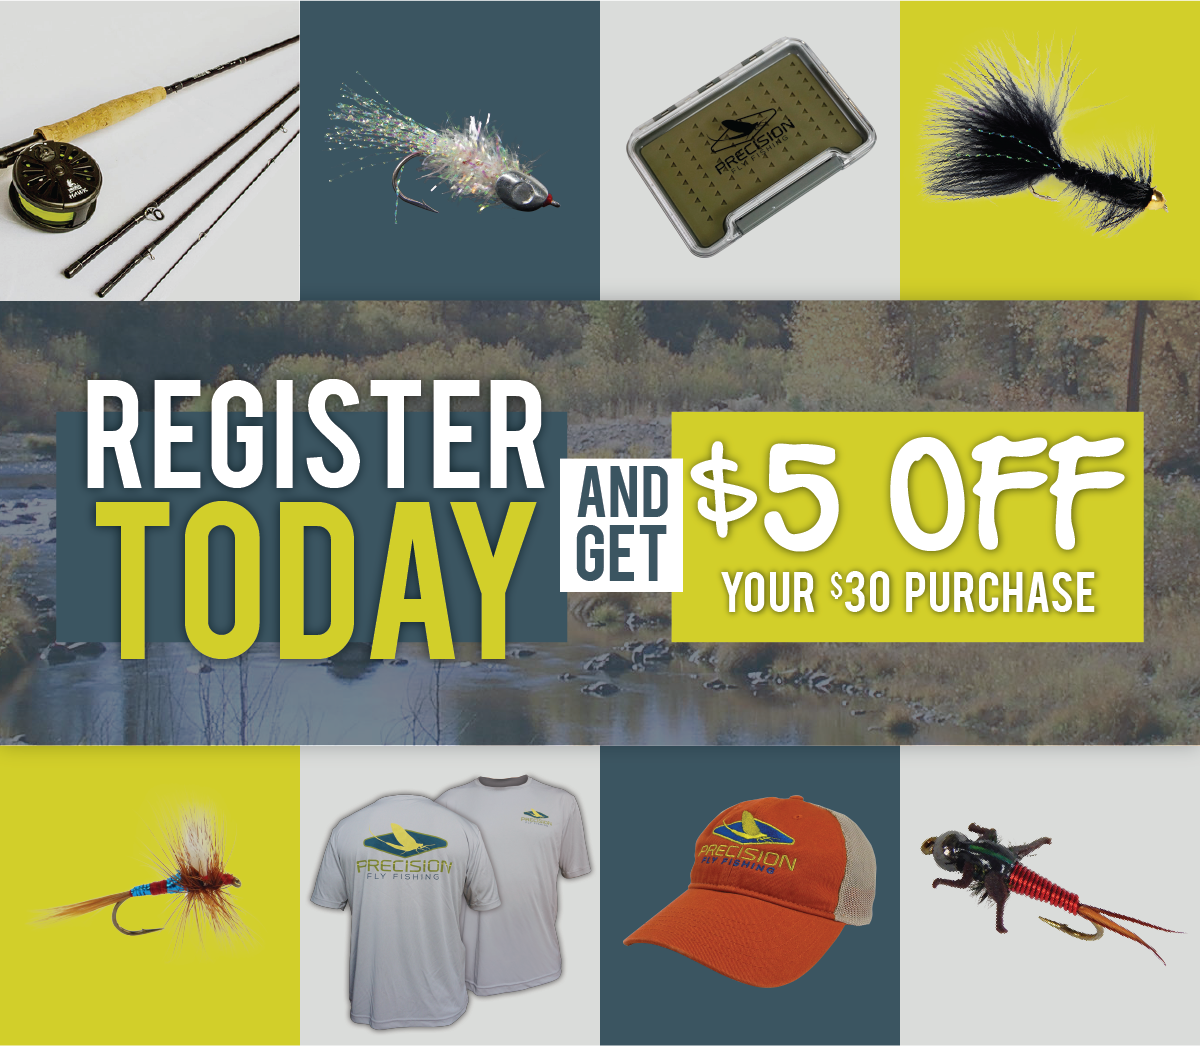 Precision Fly Fishing - Flies - Apparel - Gear - Register to get a $5 off $30 Purchase!!!